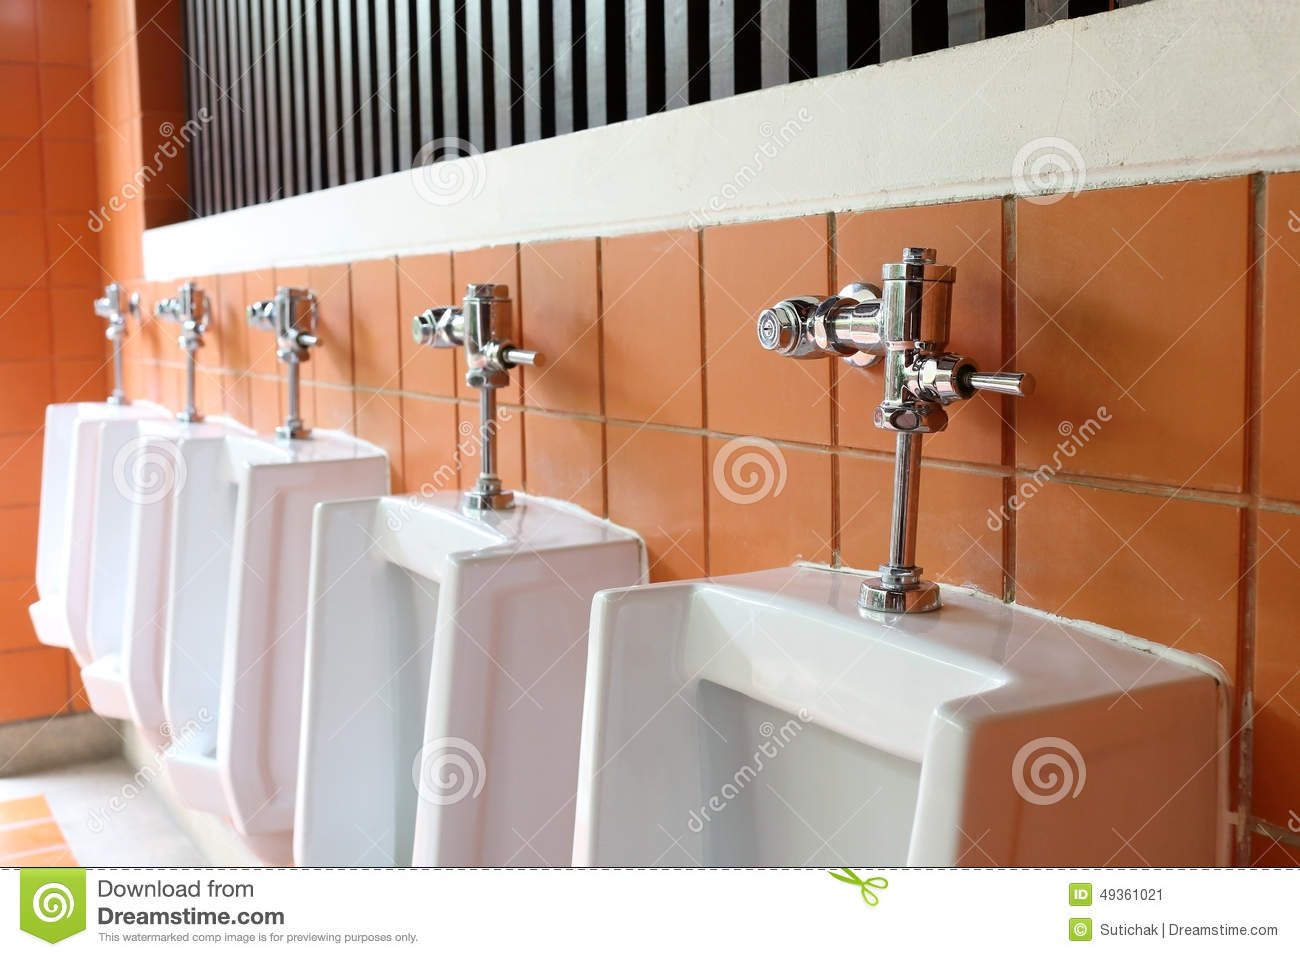 Decor interior of white urinals in men bathroom toilet for Male bathroom decor